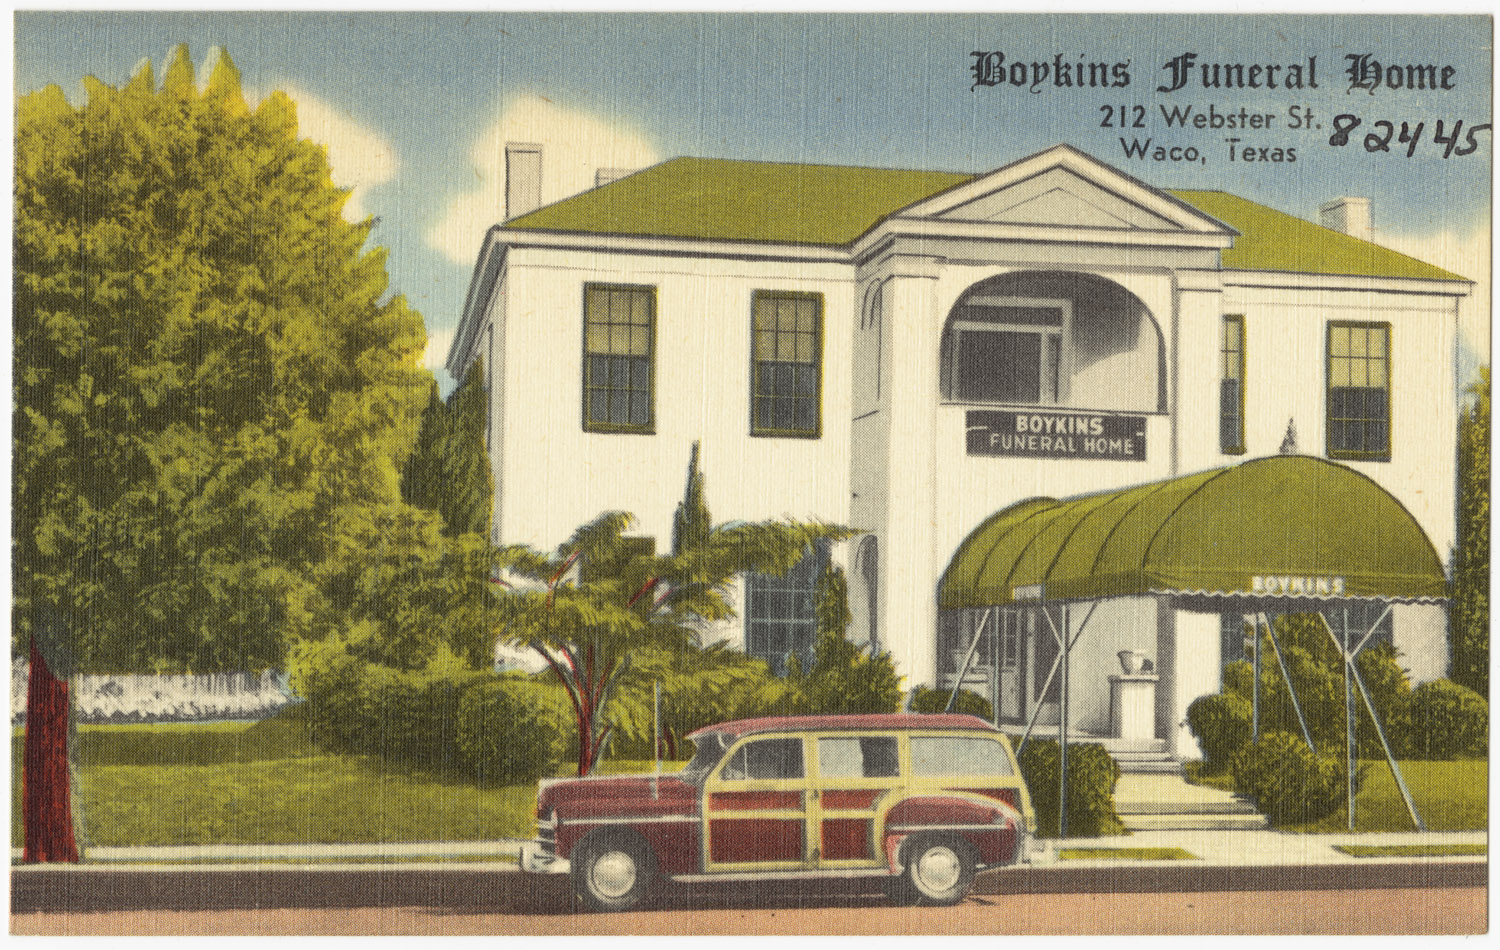 boykins funeral home 212 webster st waco